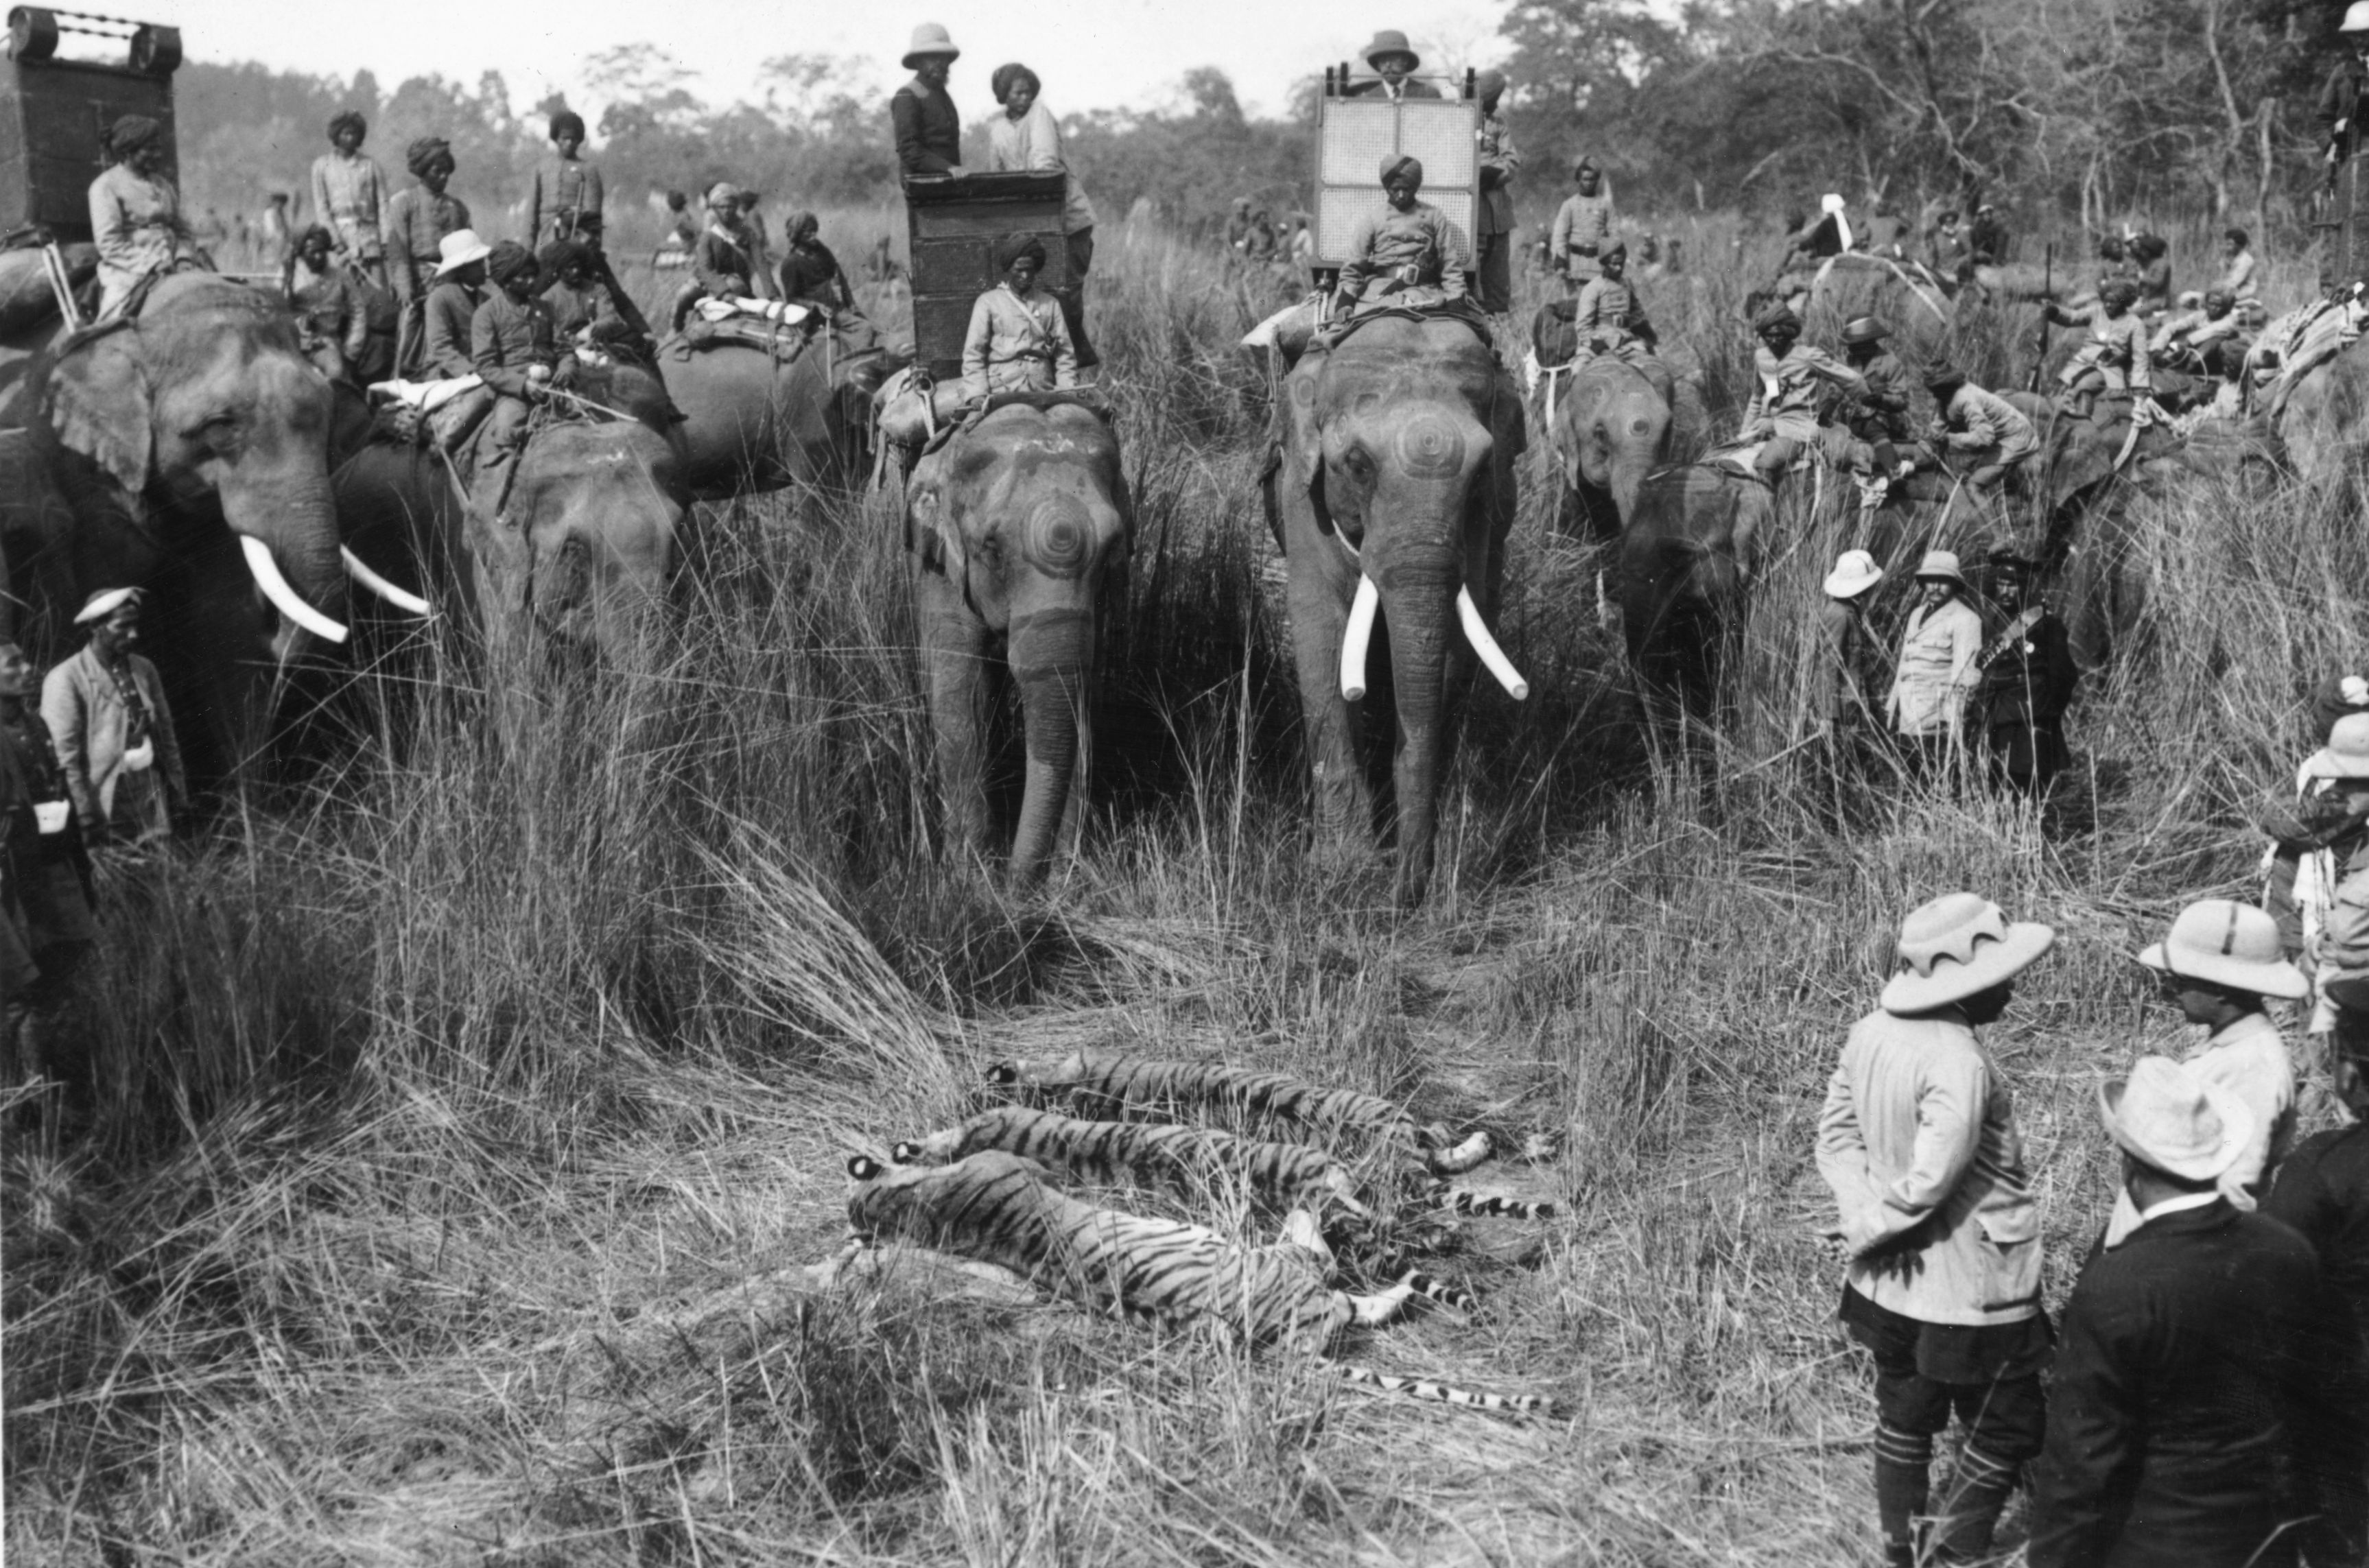 George V (1865 - 1936) with the day's bag of three tigers, after a hunt during the Durbar celebrations. The hunters are mounted on elephants.